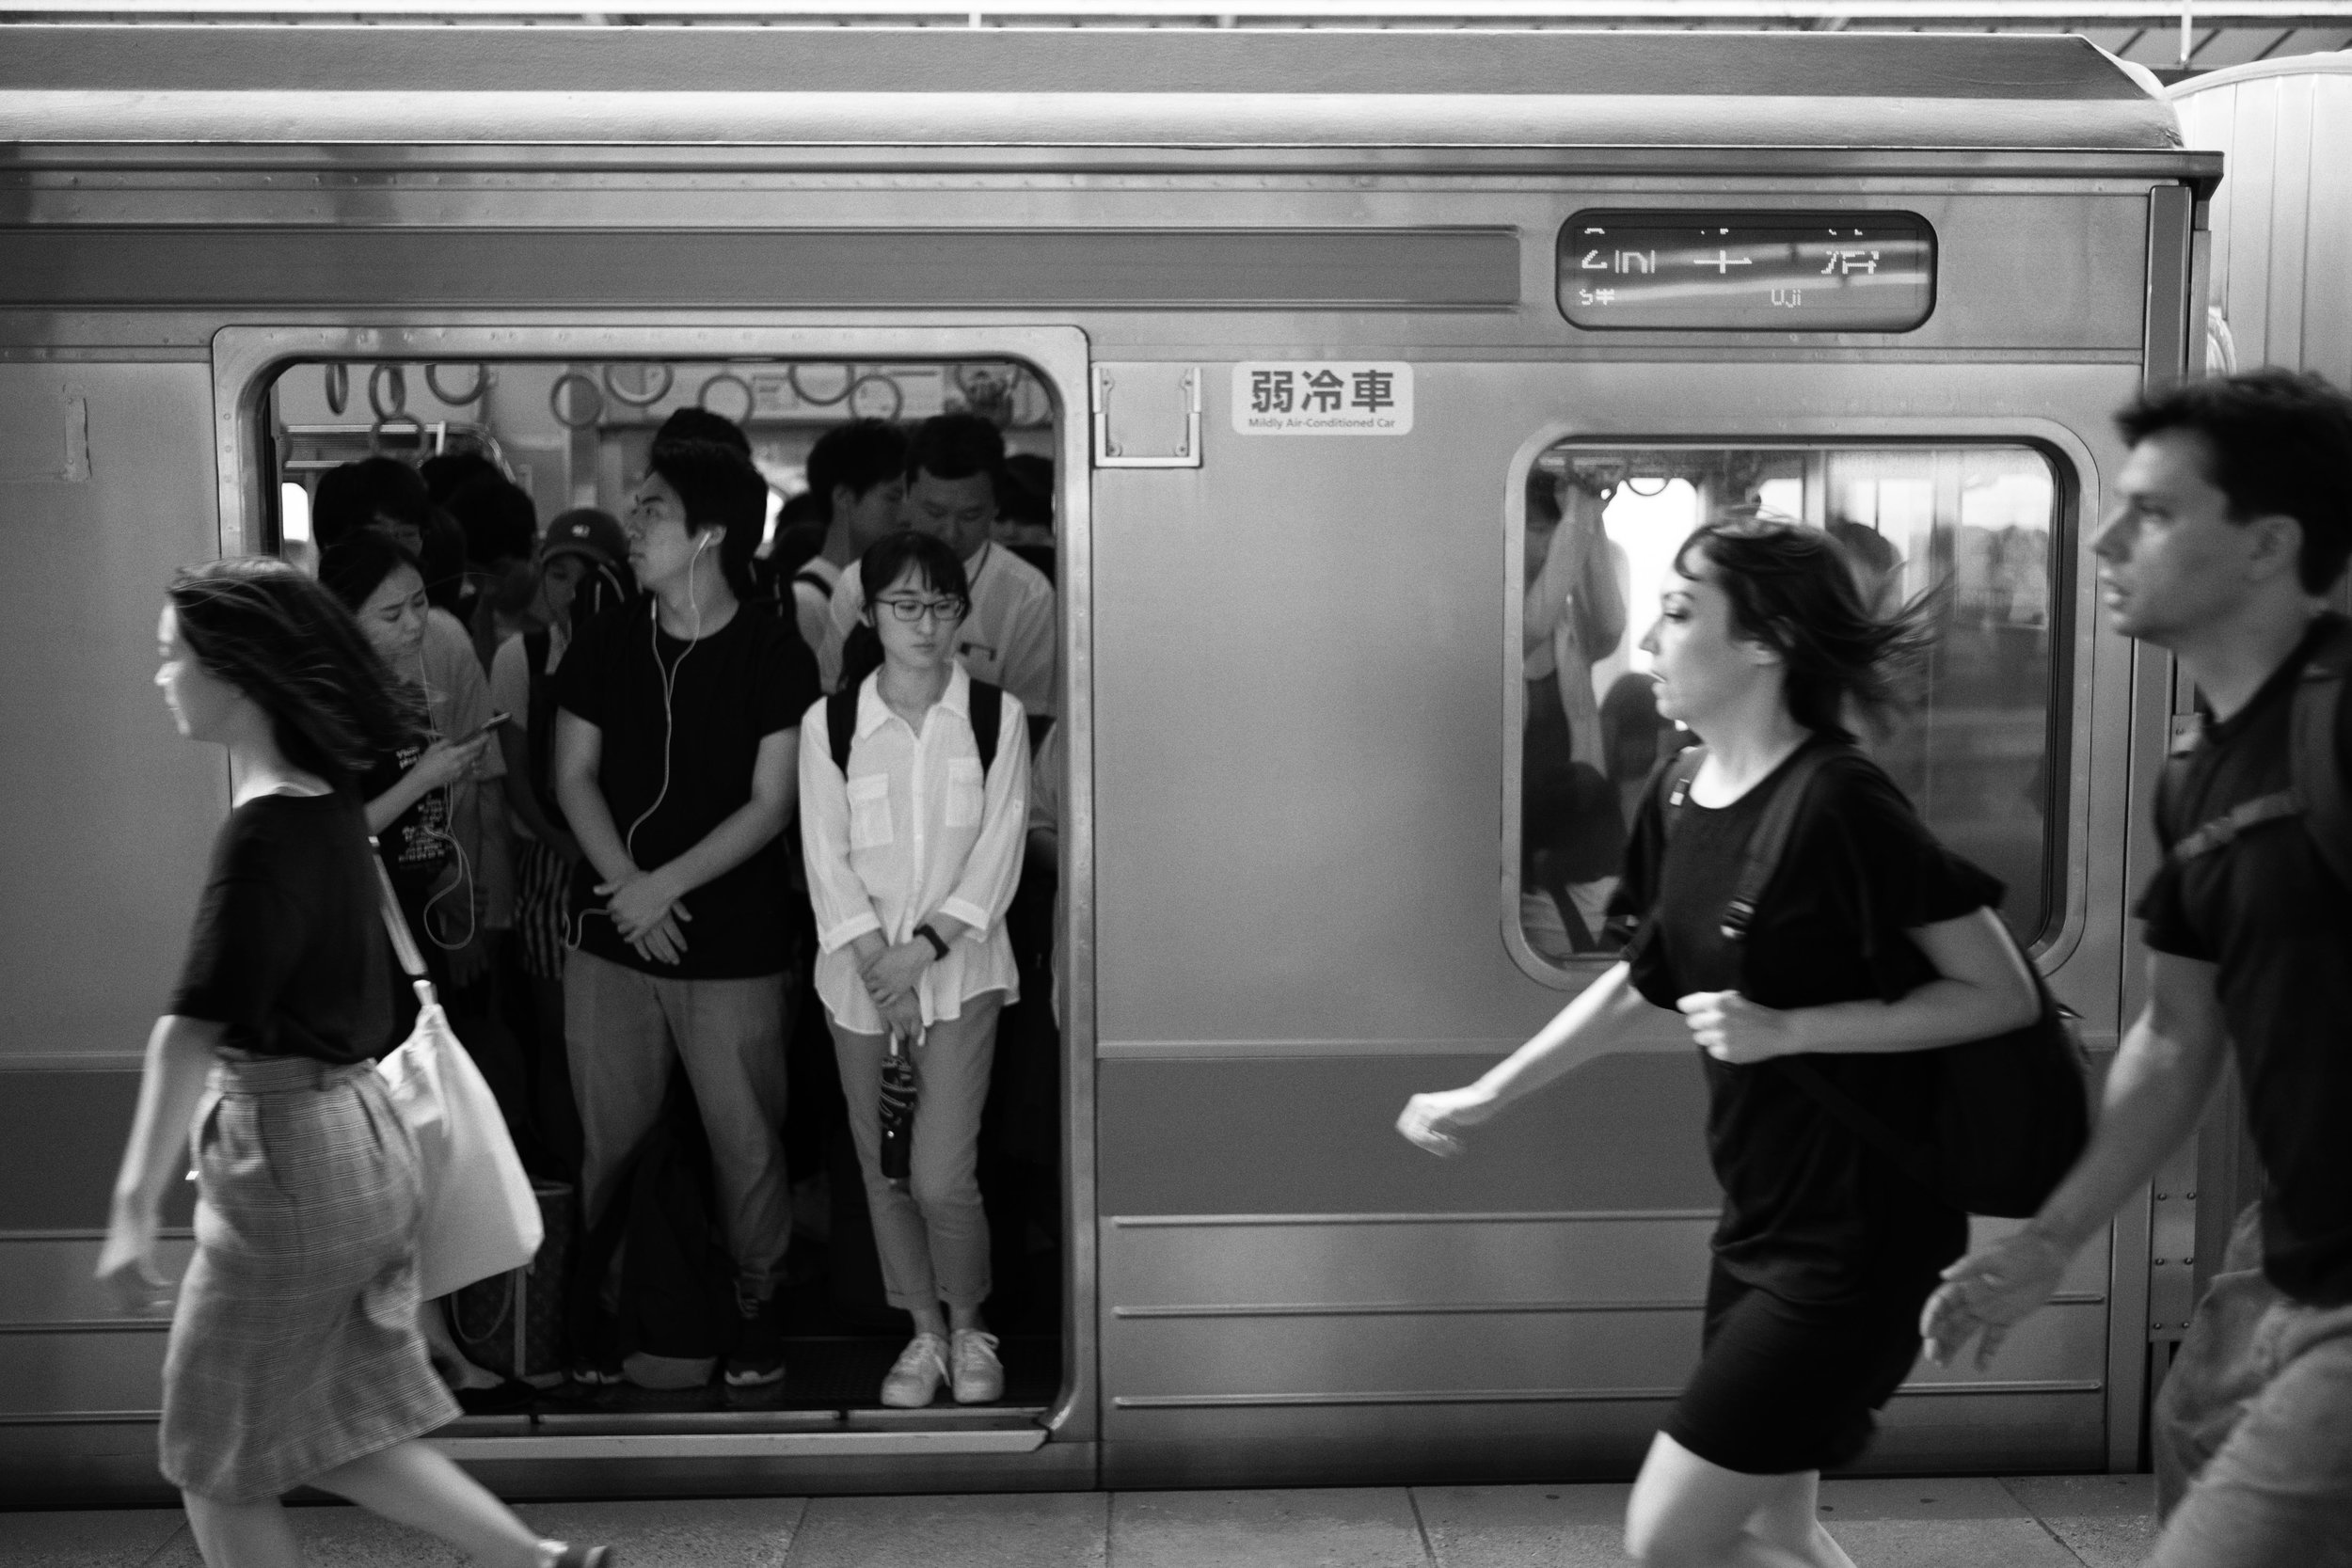 The Commute Tokyo, Japan Leica SL 35mm f/1.4 Summilux FLE © Keith R. Sbiral, 2018